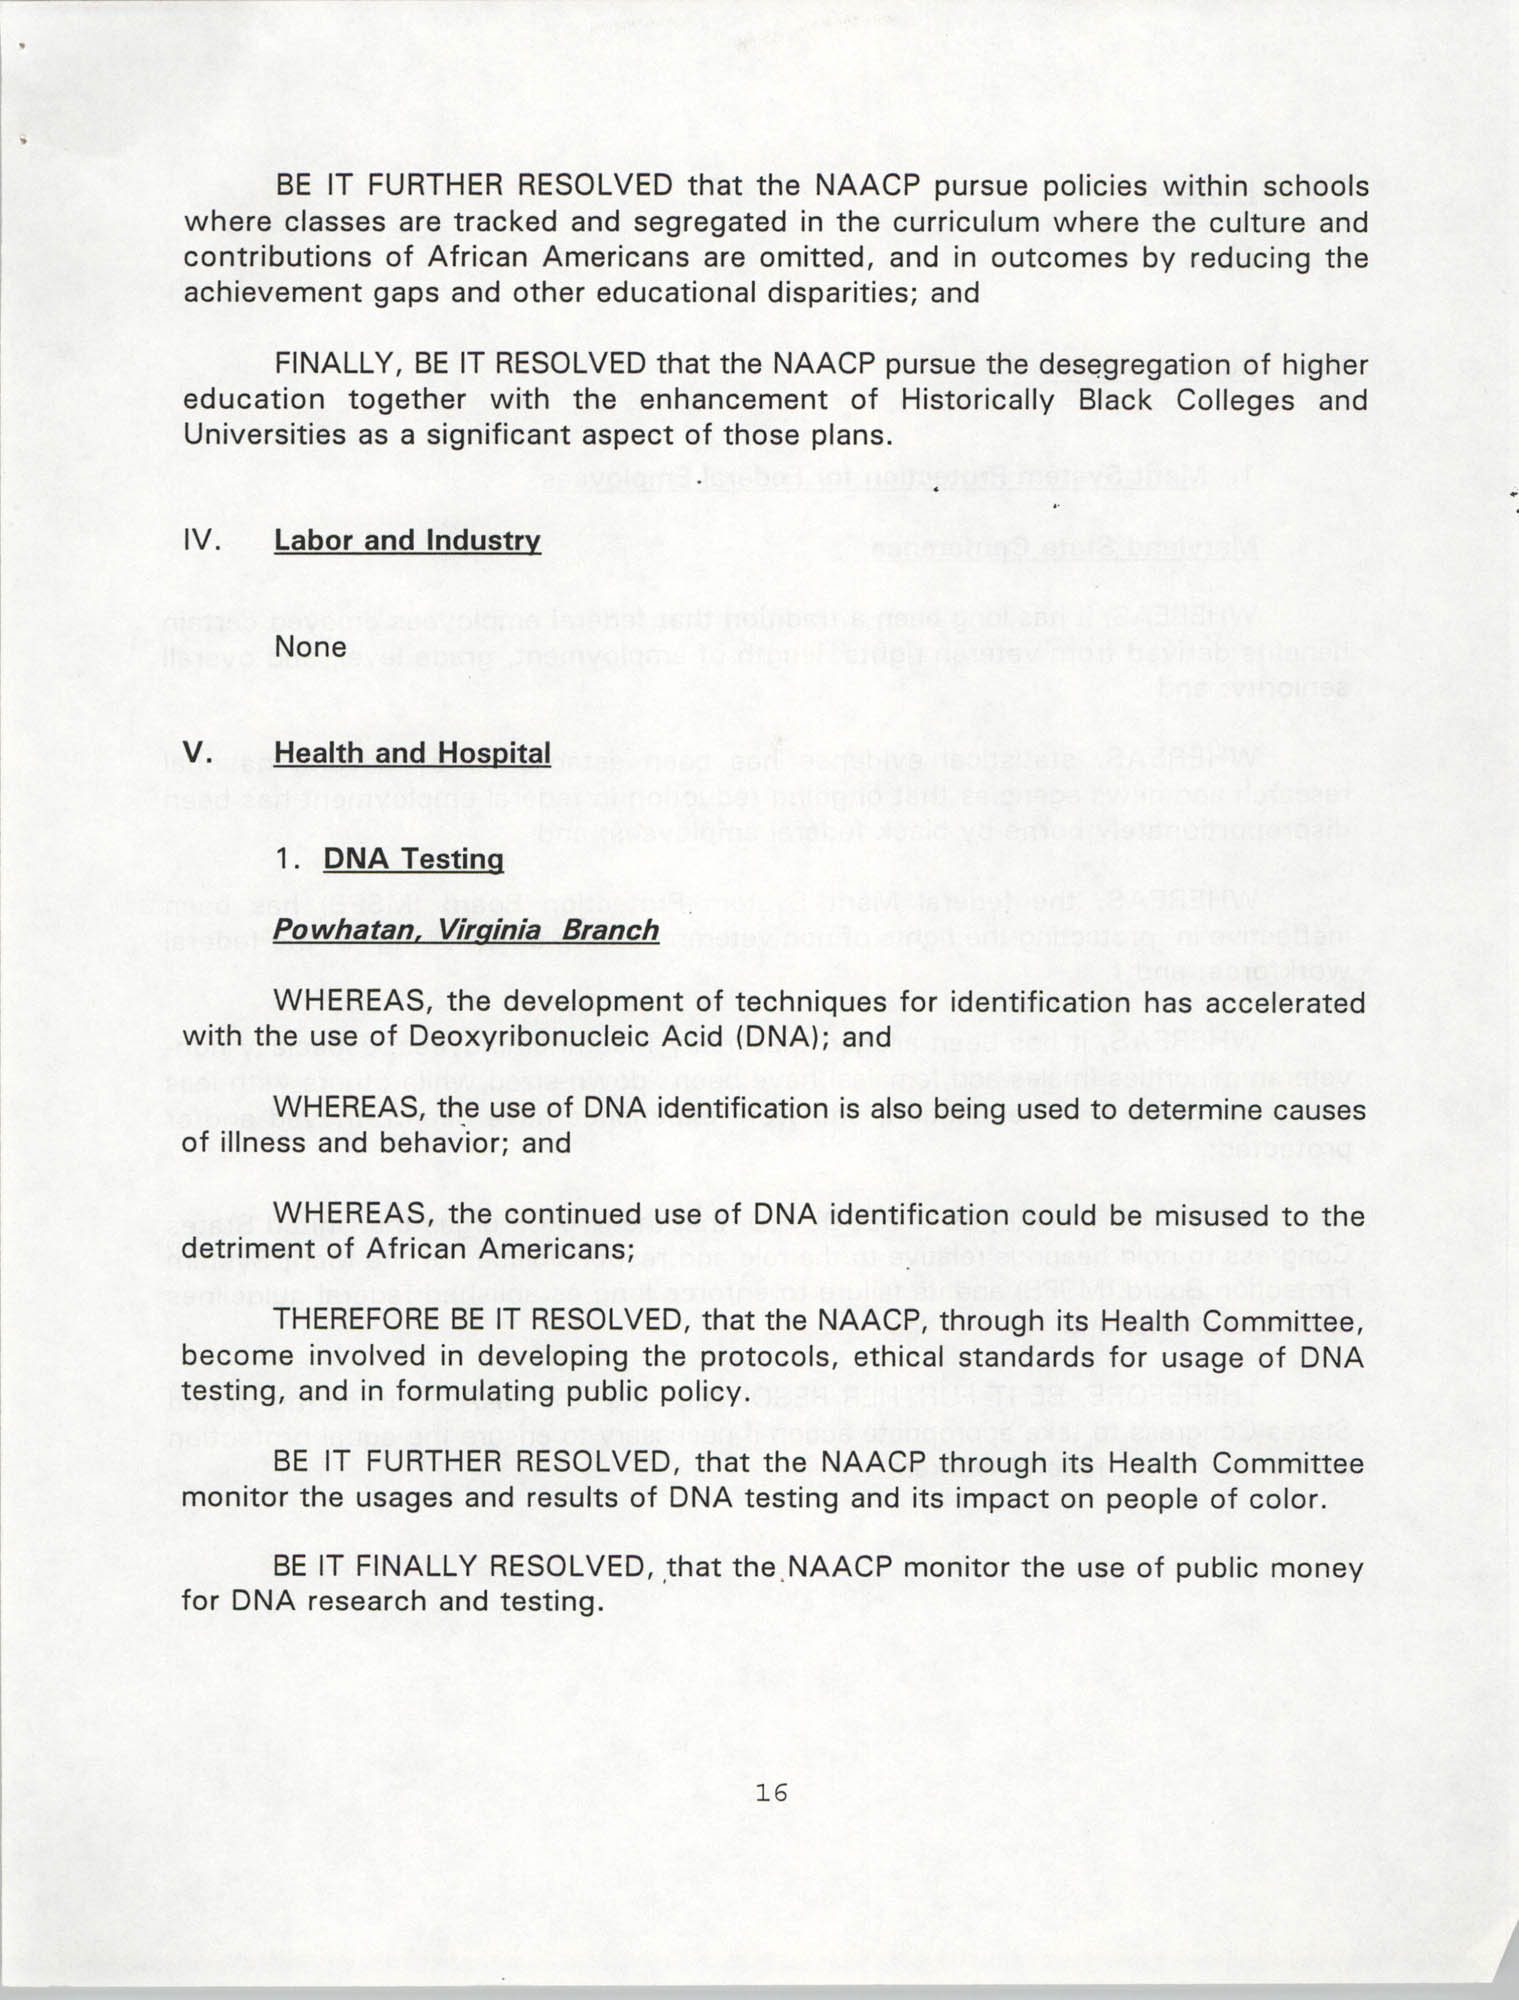 Resolutions Submitted Under Article X, Section 2 of the Constitution of the NAACP, 1994, Page 16